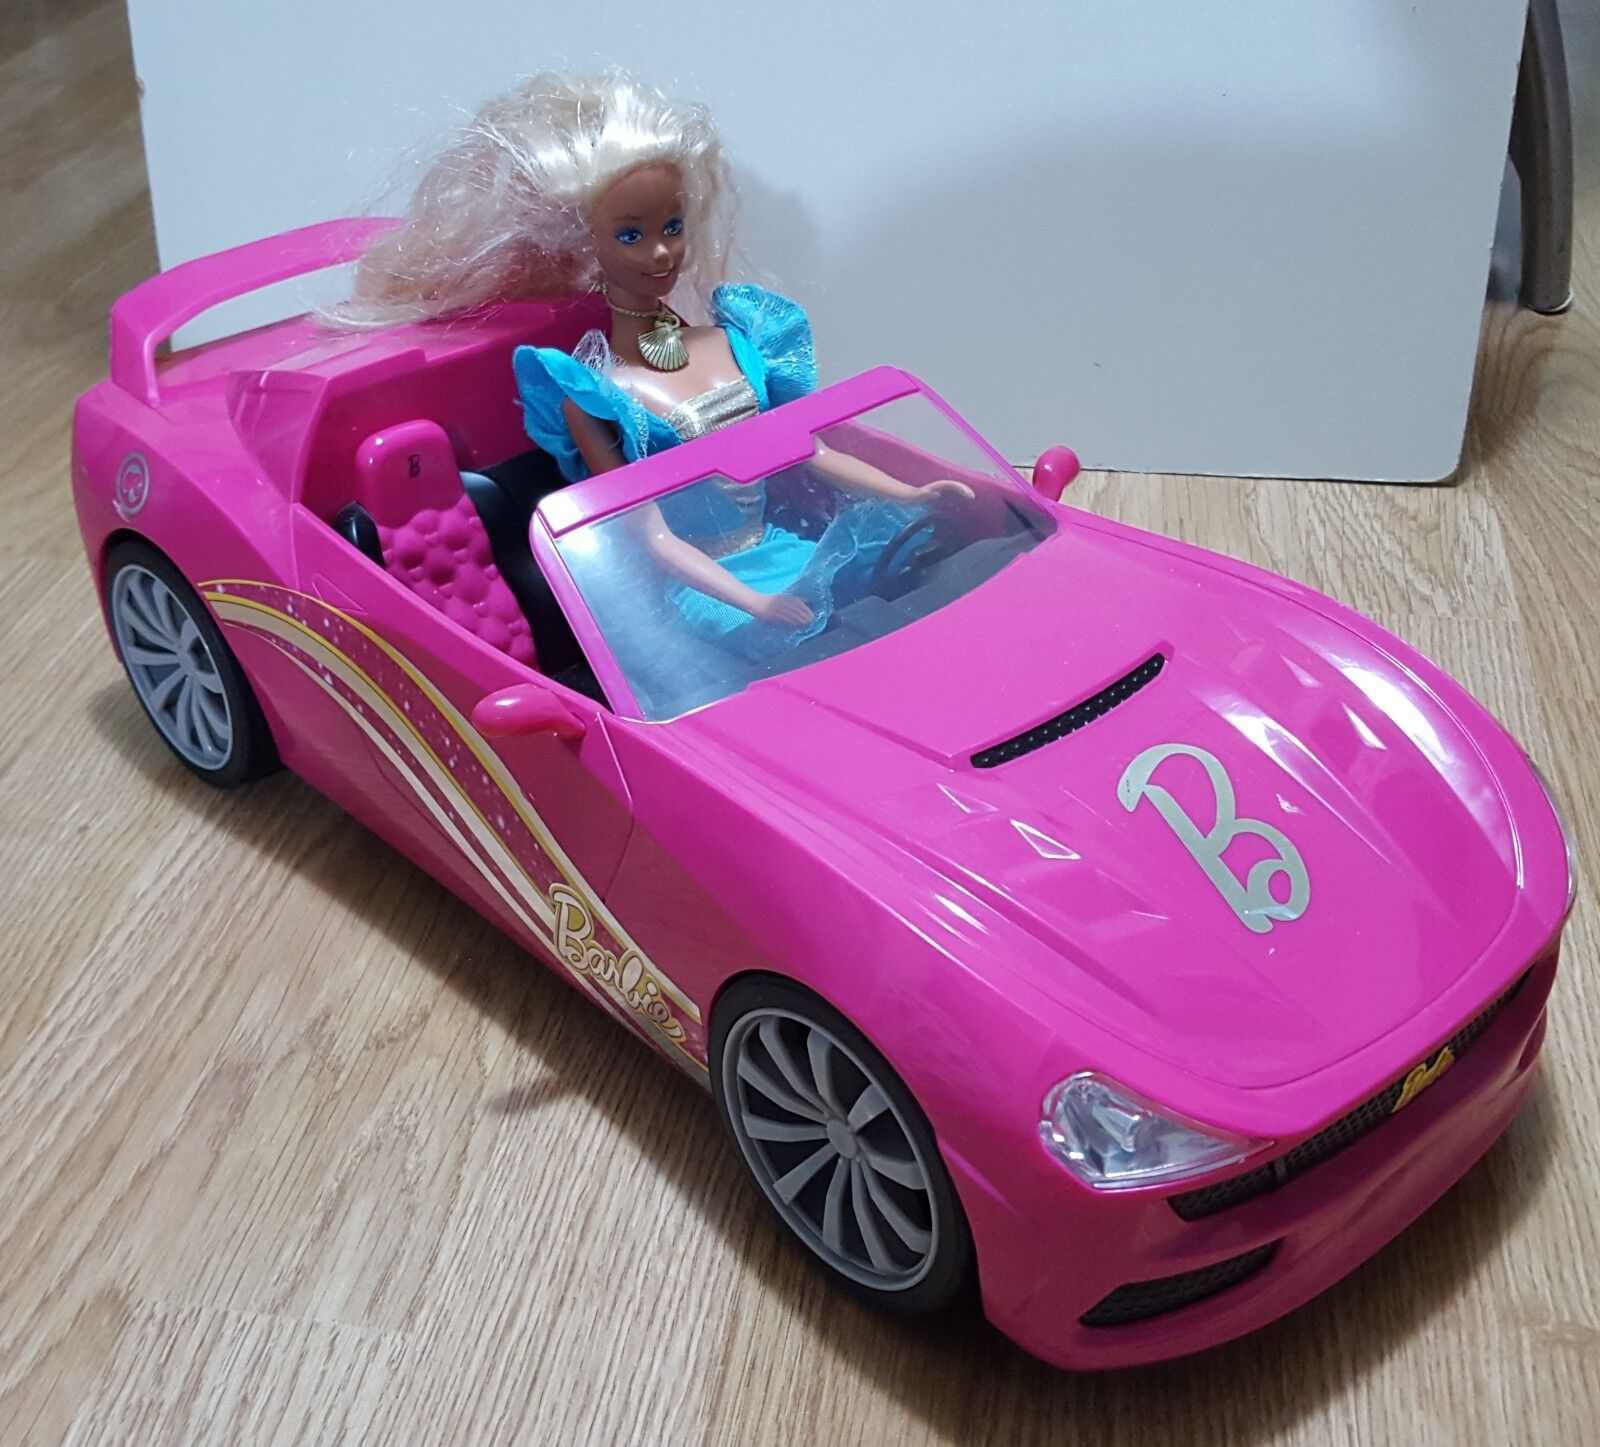 Barbie Dream Car Pink Congreenible With Doll n Clothes Radio NO Remote Control